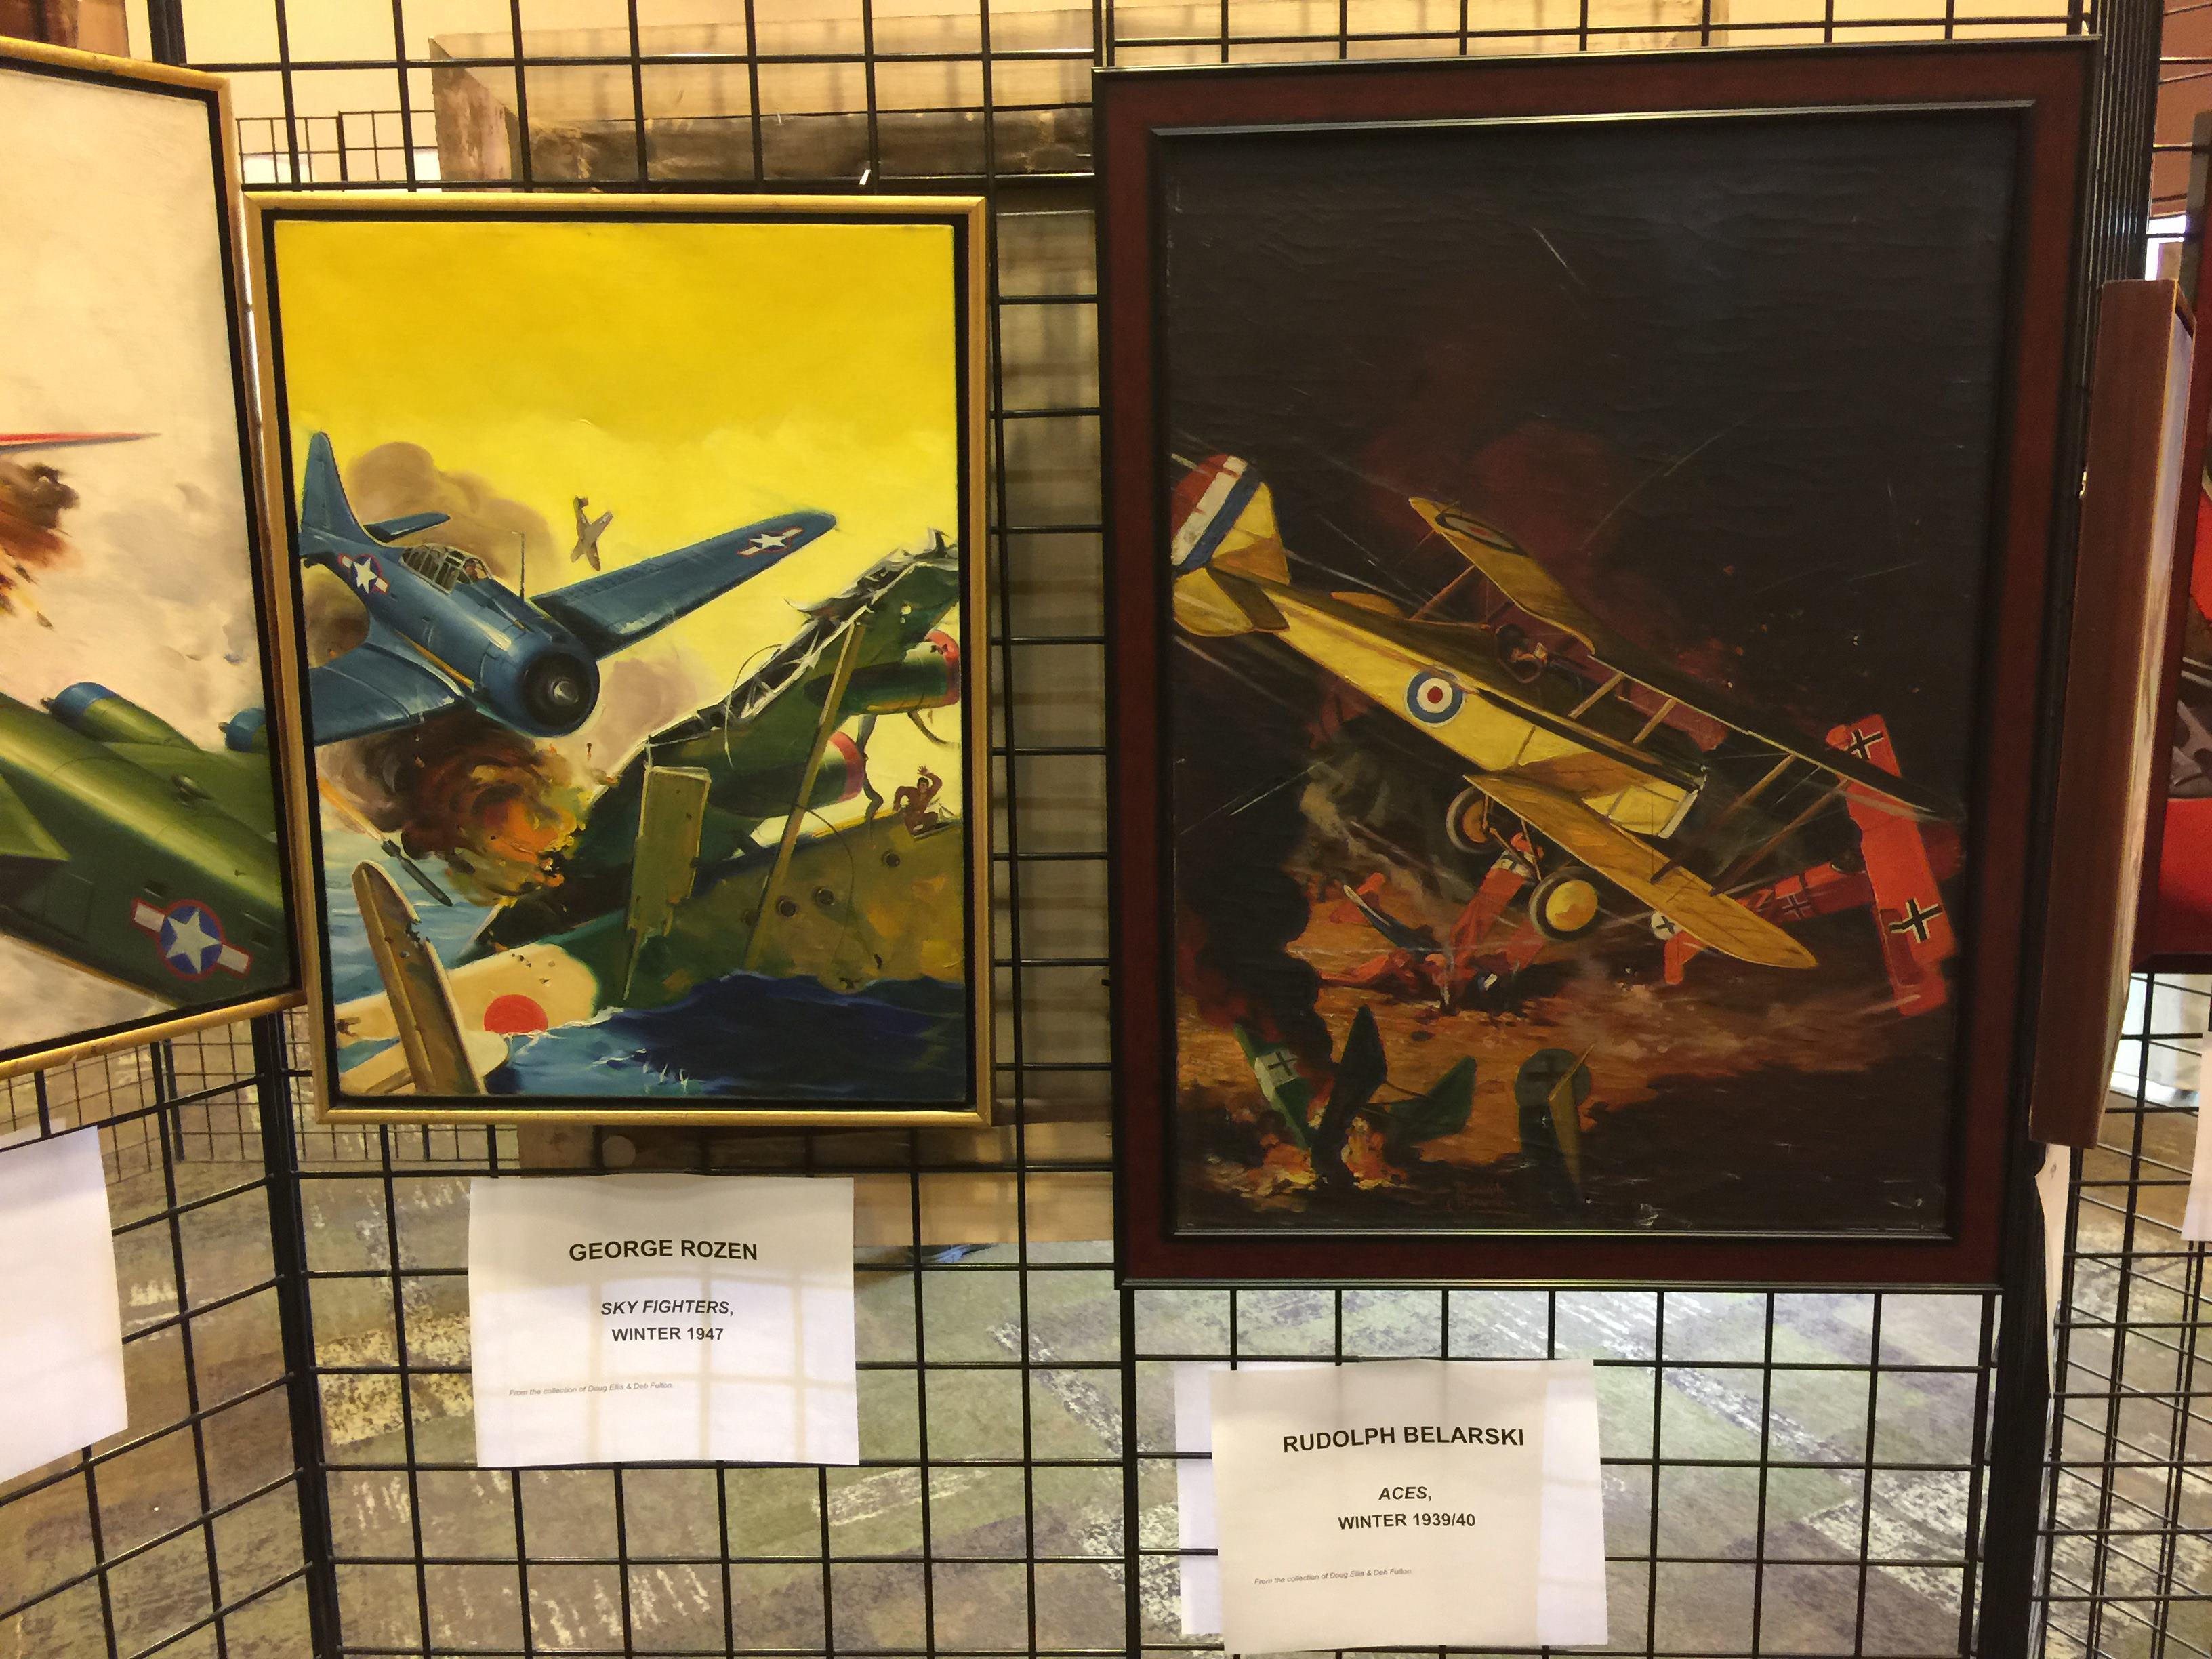 Left: George Rozen cover for Sky Fighters, Winter 1947  Right: Rudolph Belarski cover for Aces, Winter 1939/40